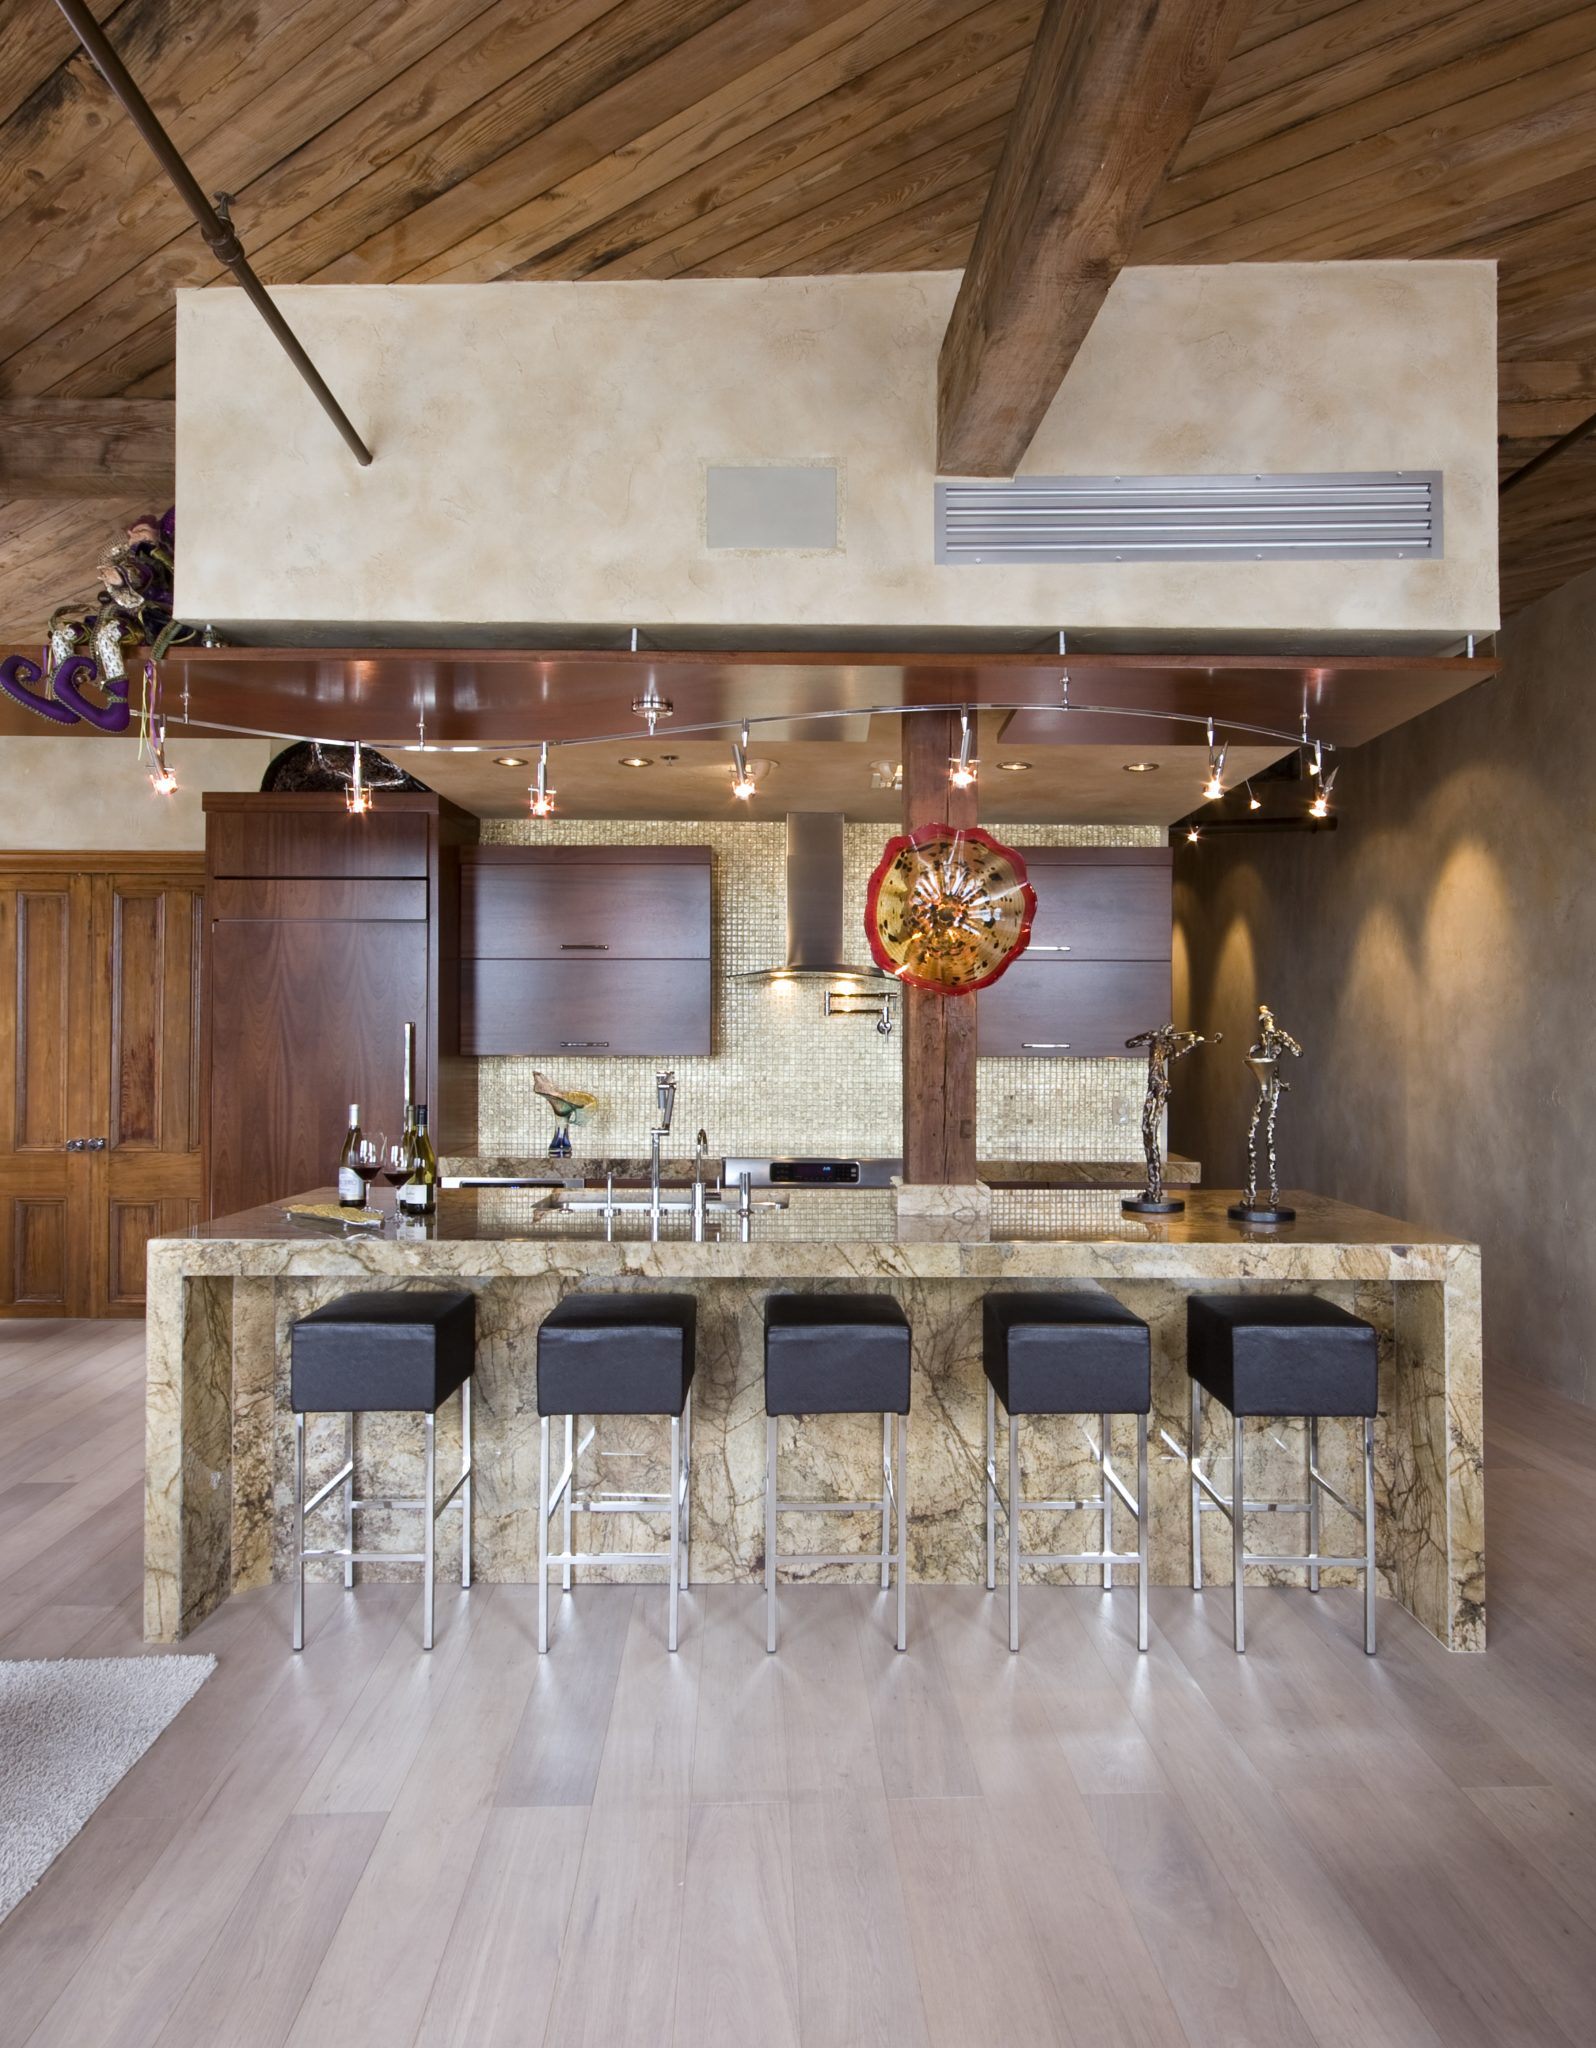 New Orleans Penthouse, Kitchen Exposed Brick and Wood Beams by Posh Exclusive Interiors